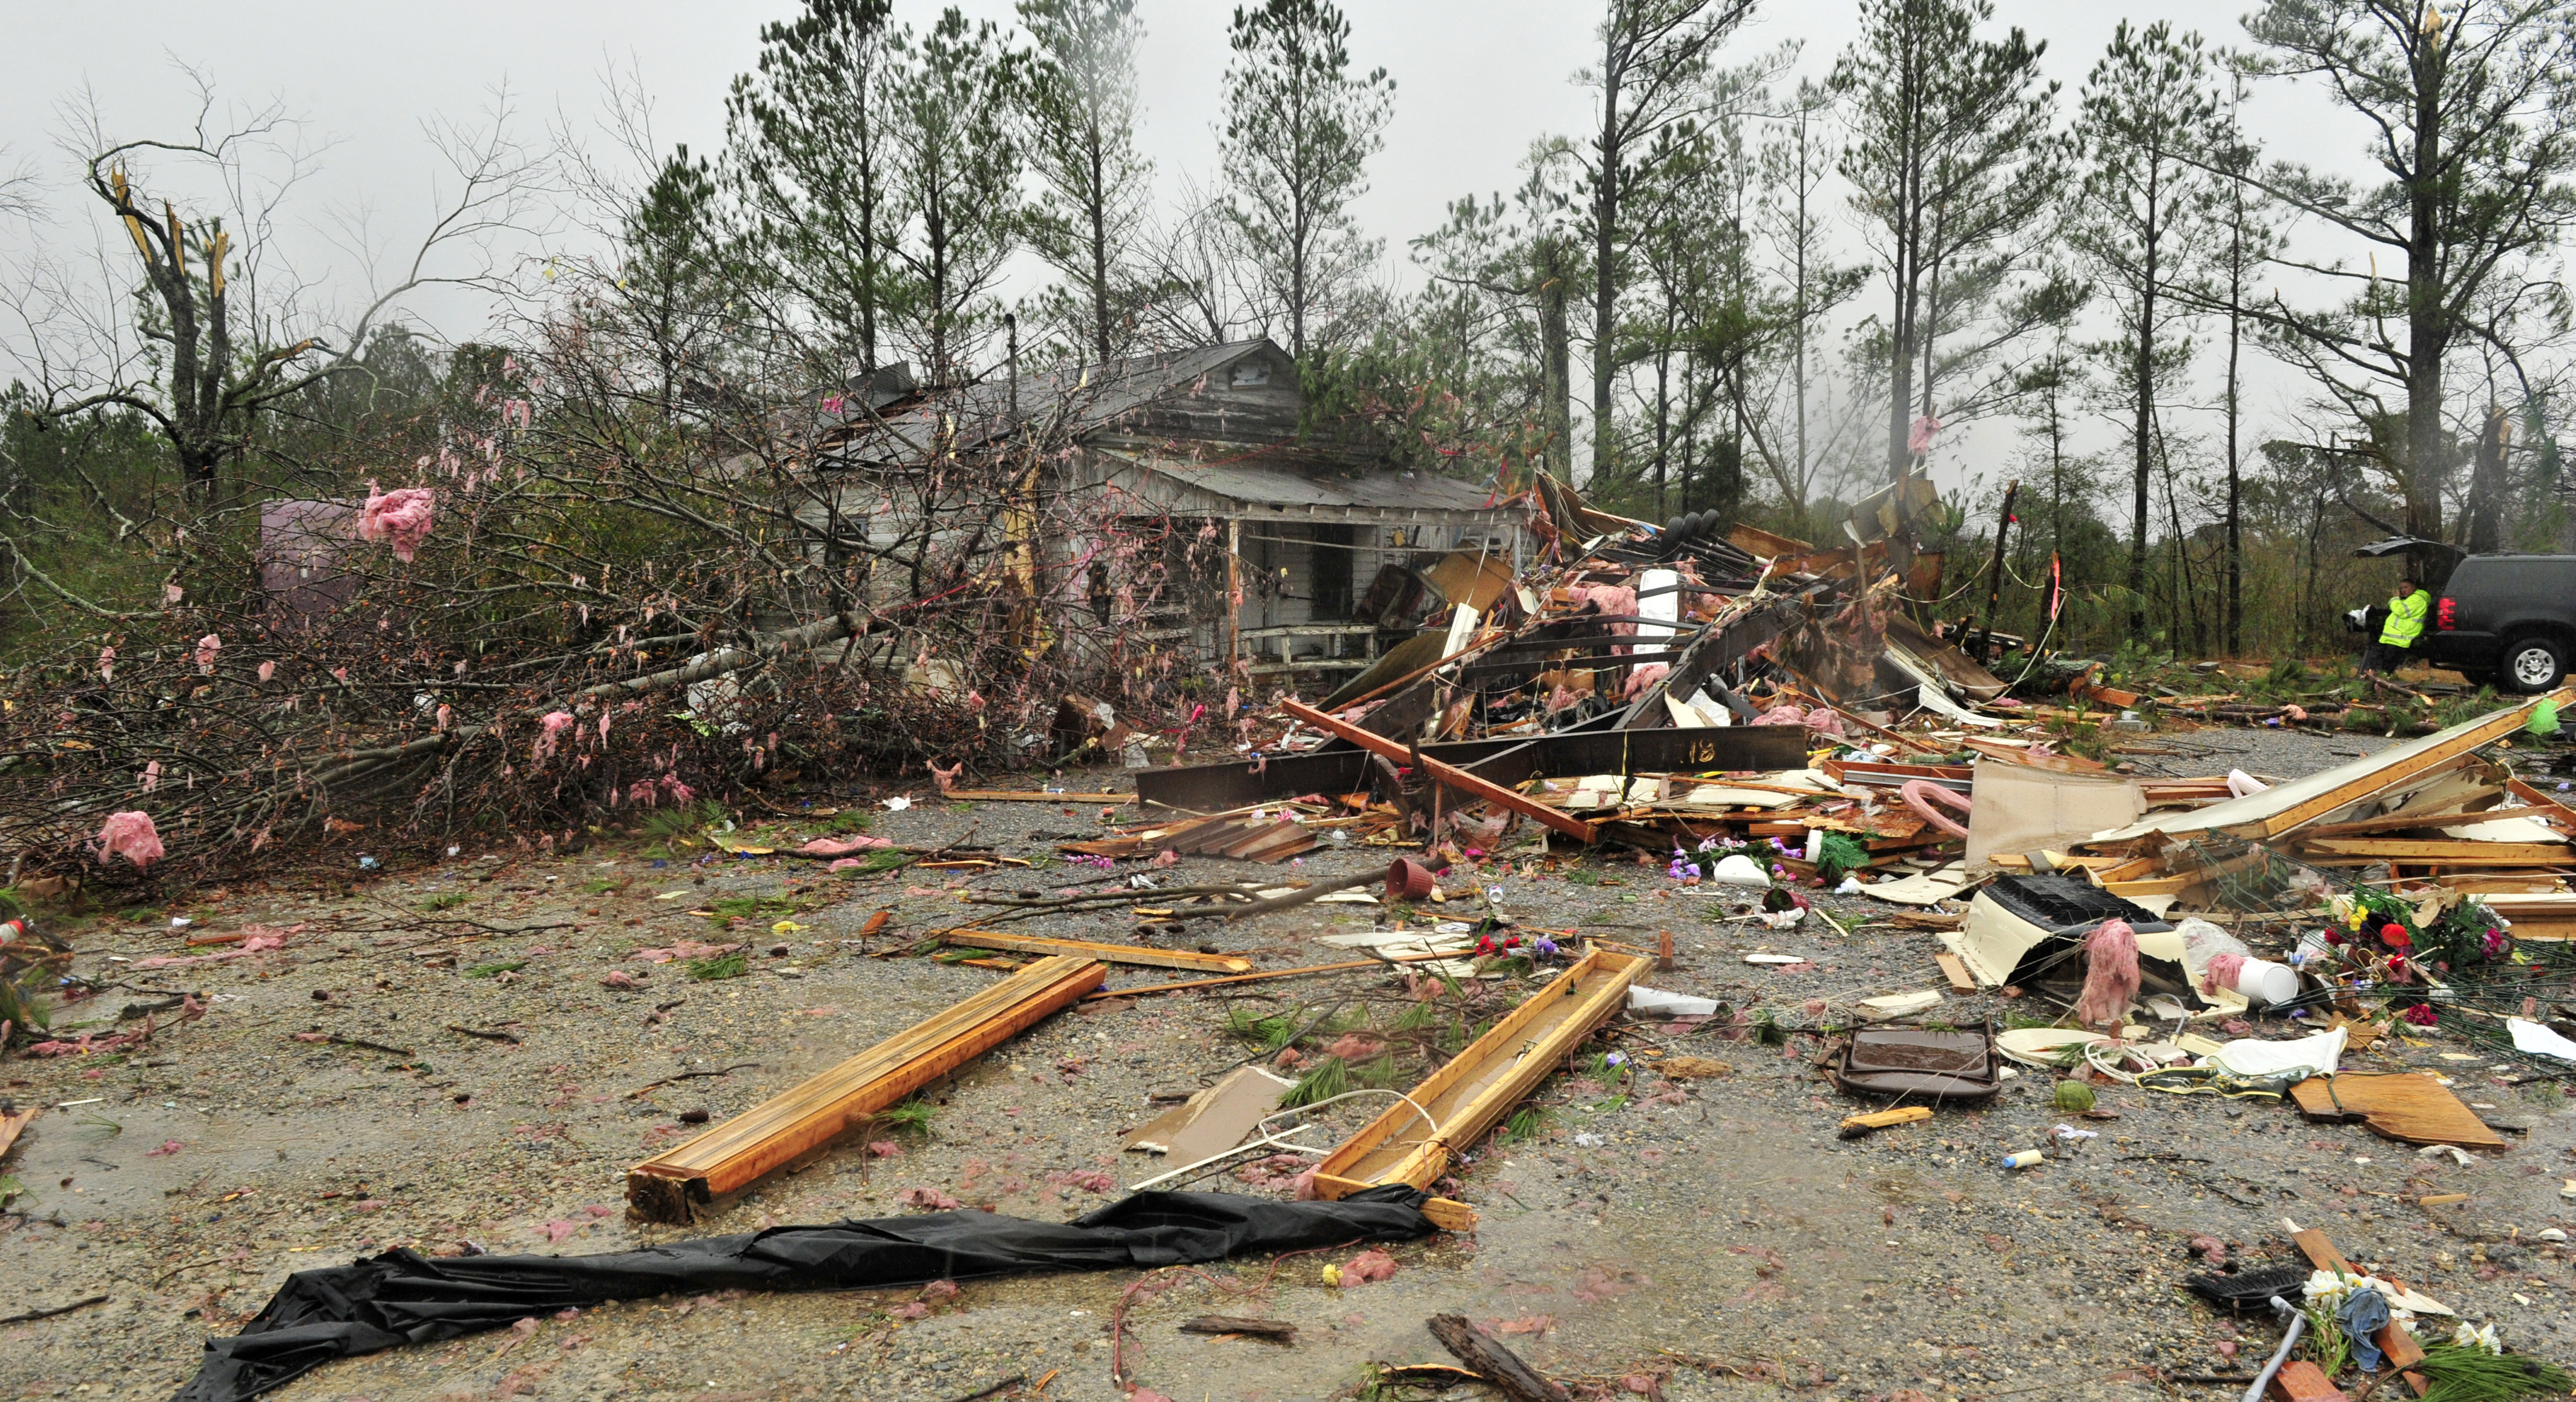 Three people were killed and one critically injured in this mobile home as a tornado swept through the small Sand Mountain town on Nov. 30 in Rosalie, Alabama. (Eric Schultz/Getty Images)